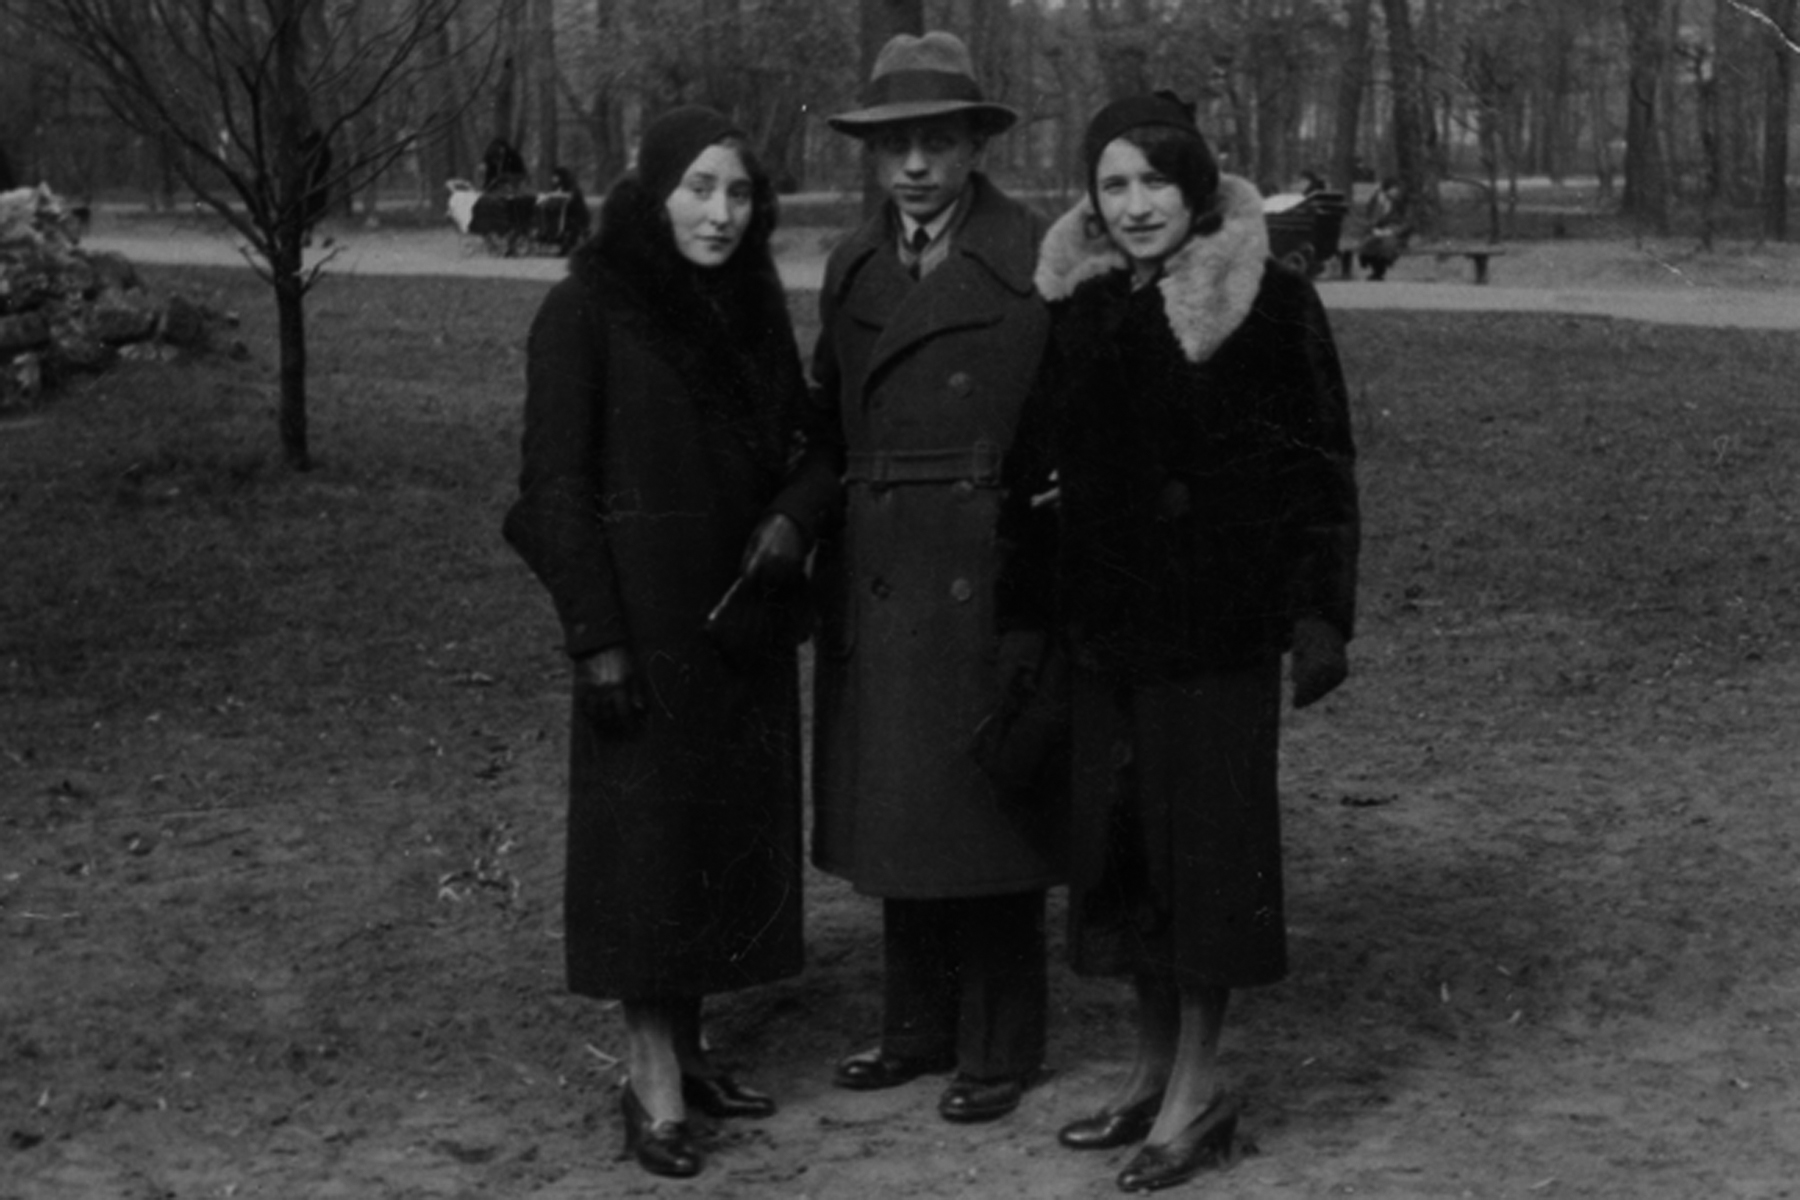 Friends in a park, Paris, 1934.